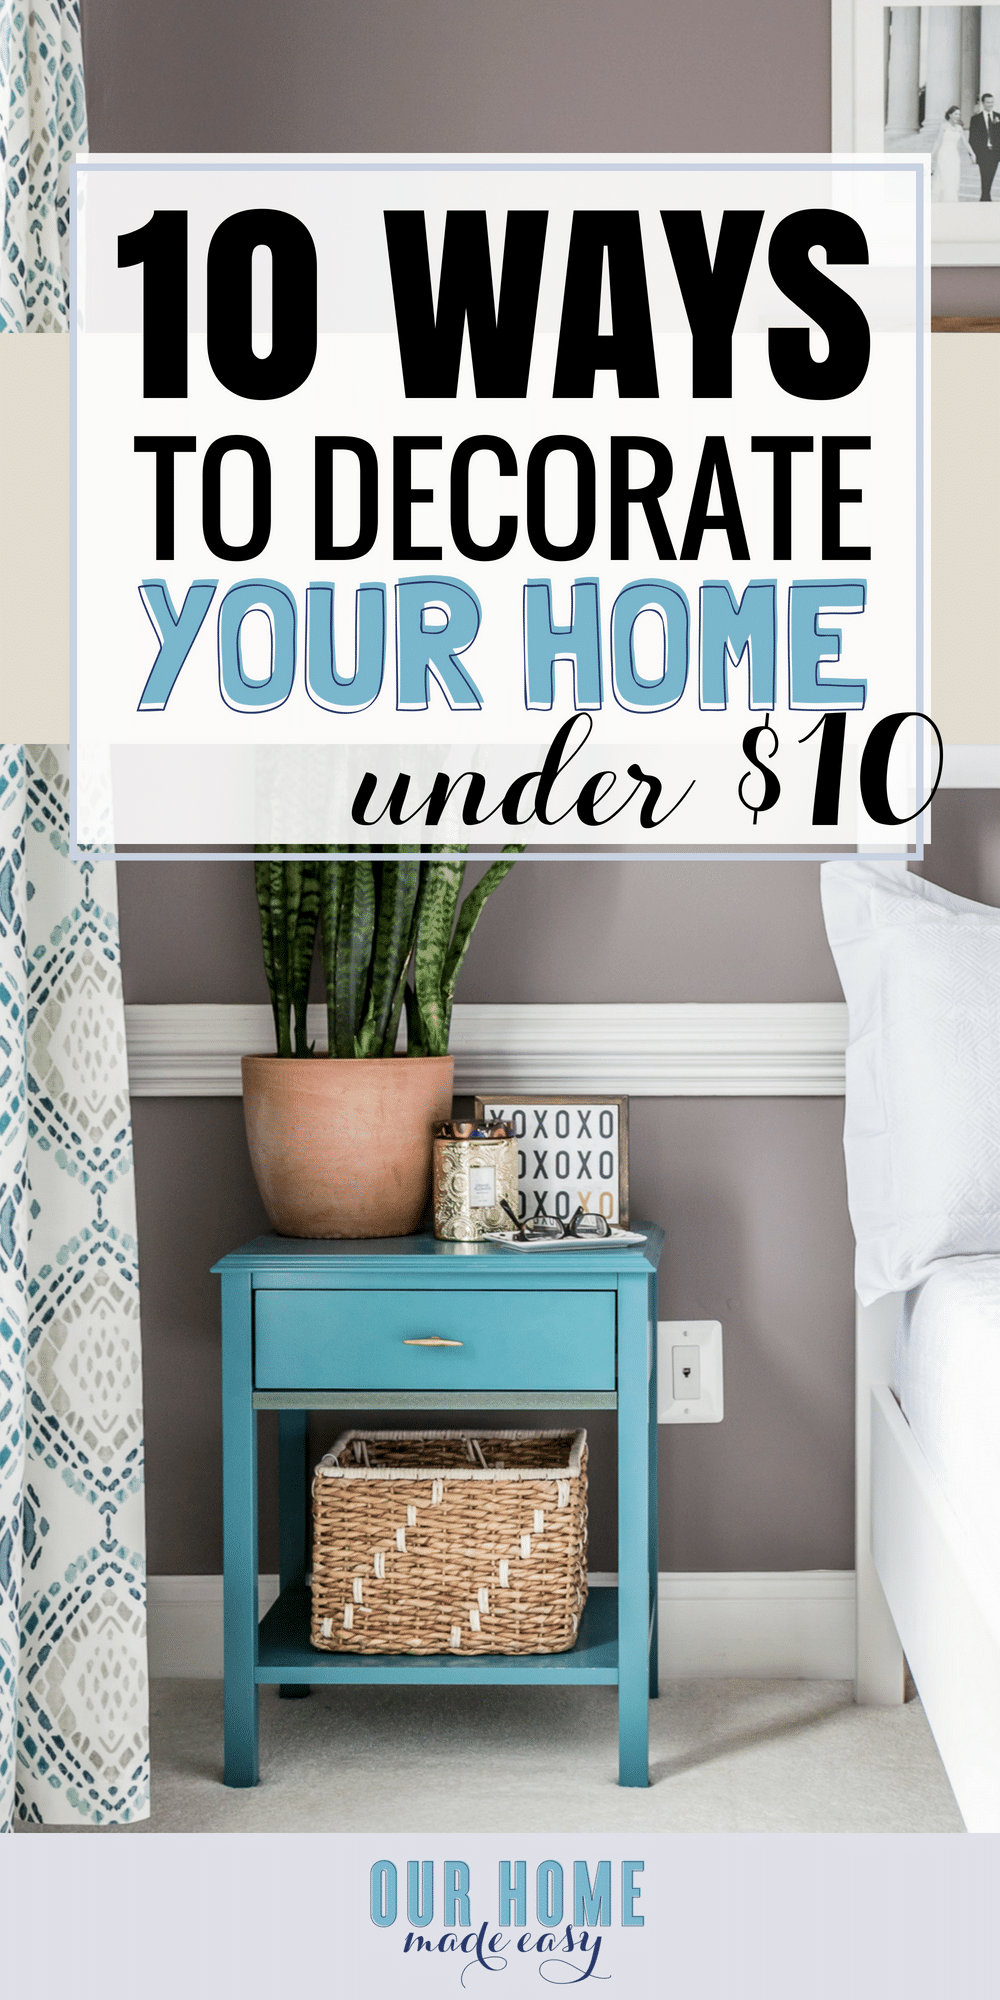 Check Out These Easy Ways To Decorate Your Home All Are Under 10